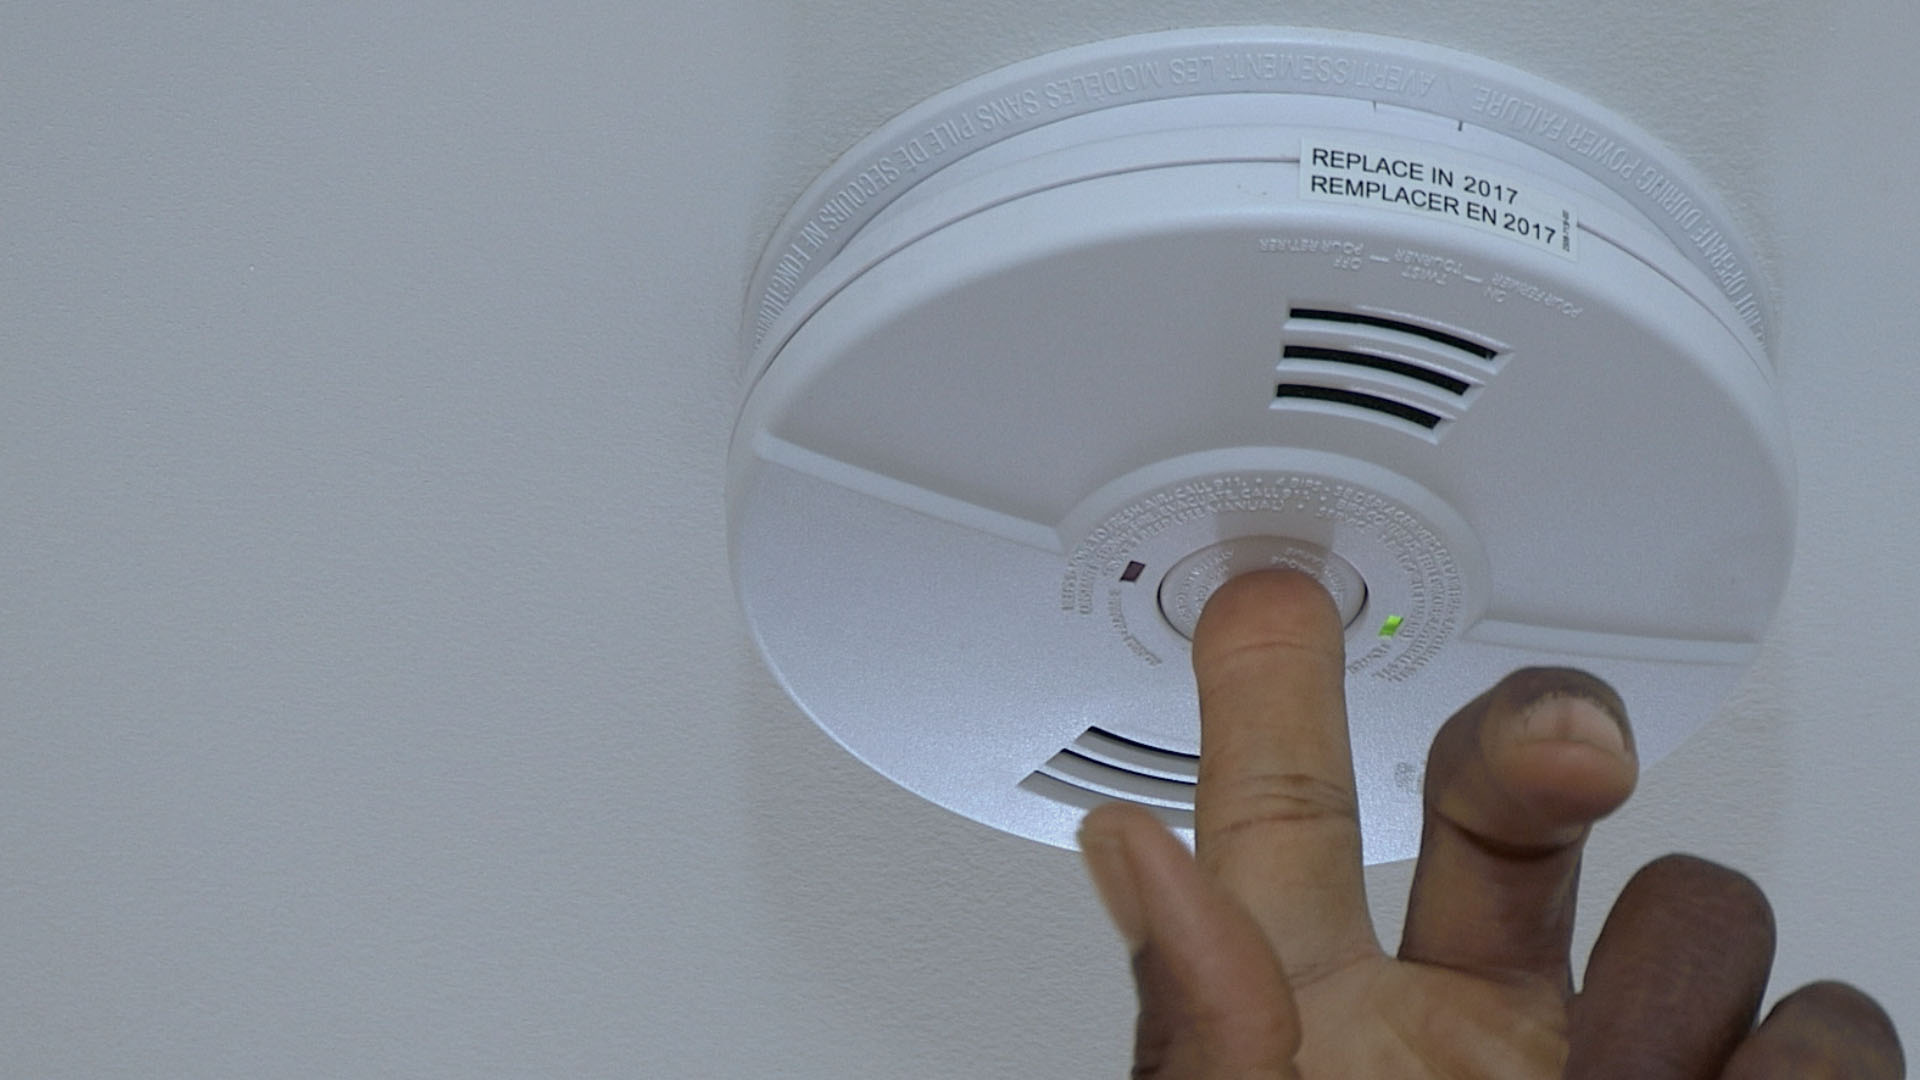 kitchen smoke detector redesign ideas fire prevention week tips to ready yourself and your home